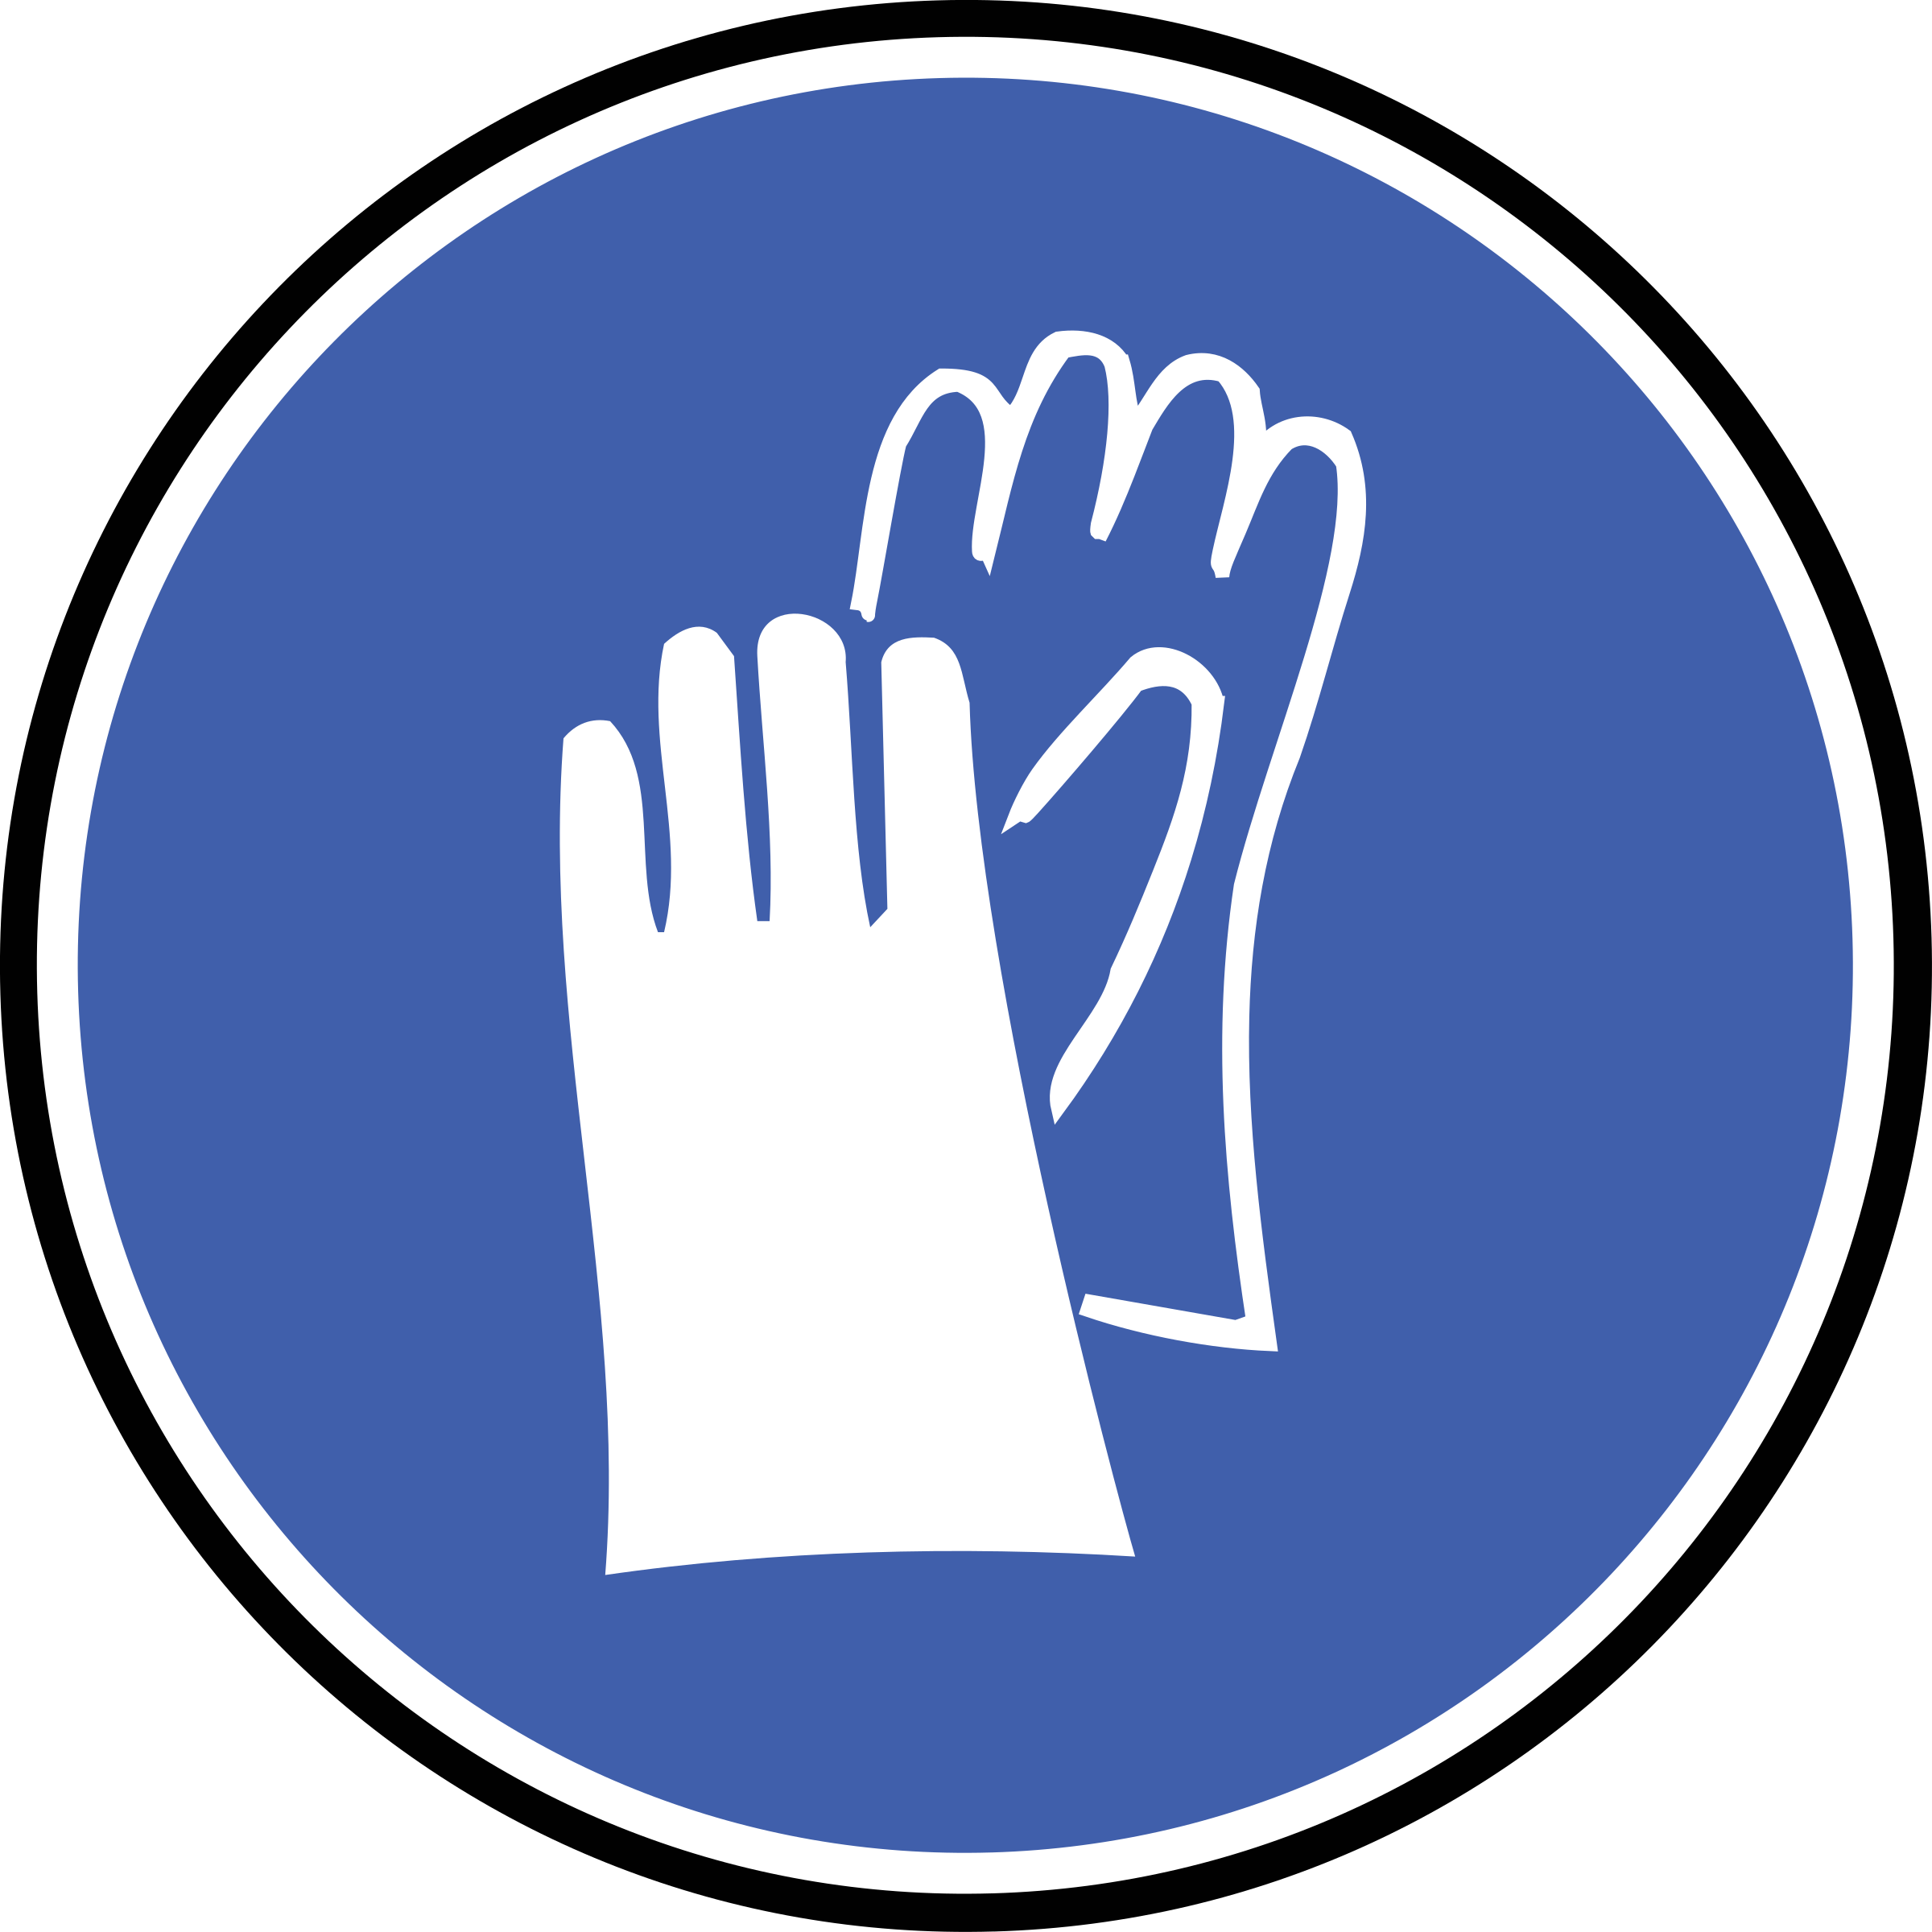 Glove clipart science. Protections gloves icons png